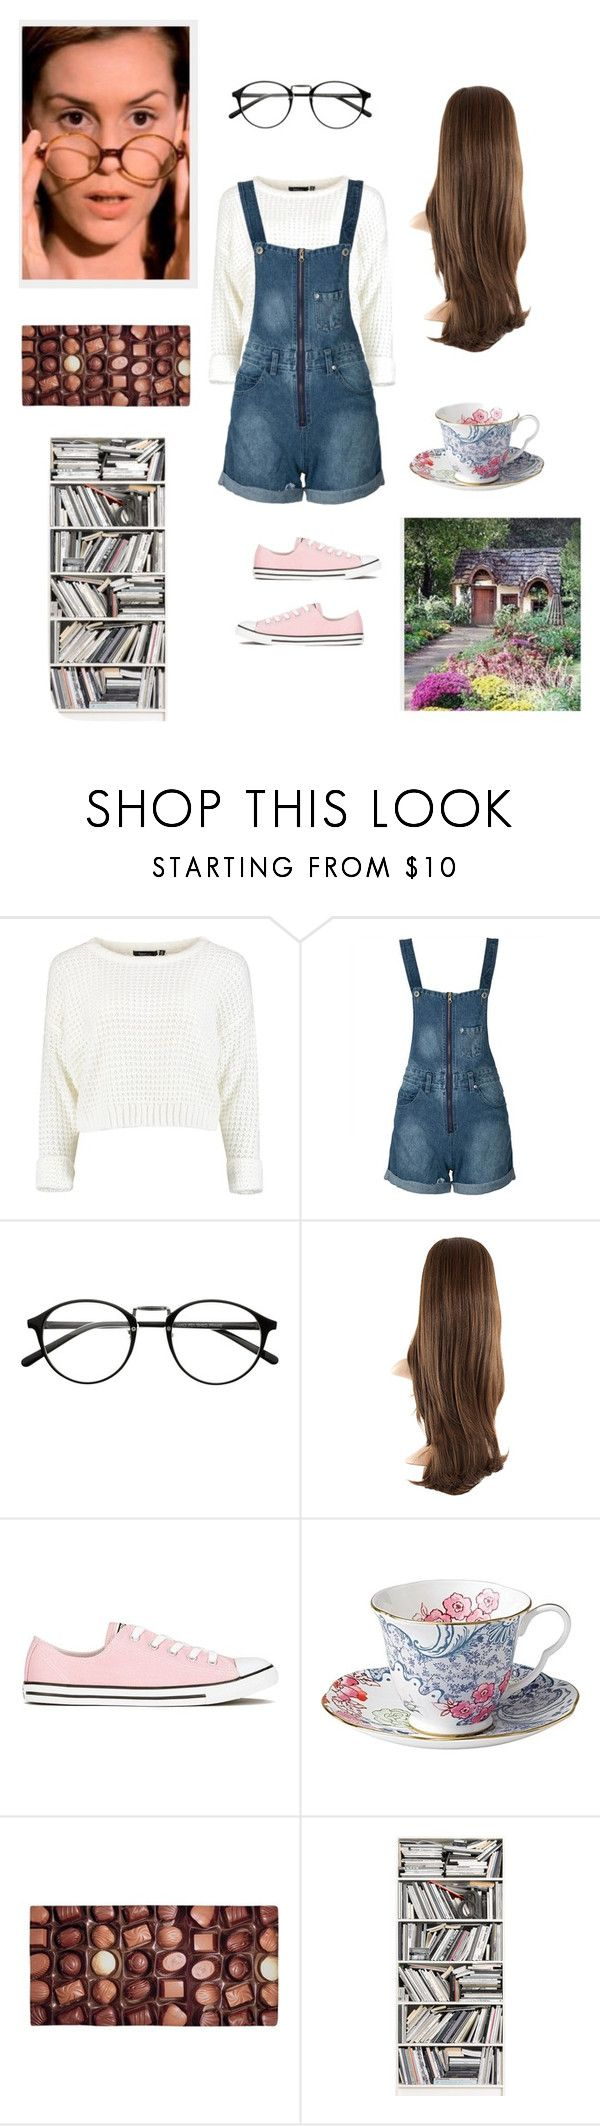 """Ms.Honey from Matilda"" by aribear12 ❤ liked on Polyvore featuring WithChic, Converse and Brewster Home Fashions"